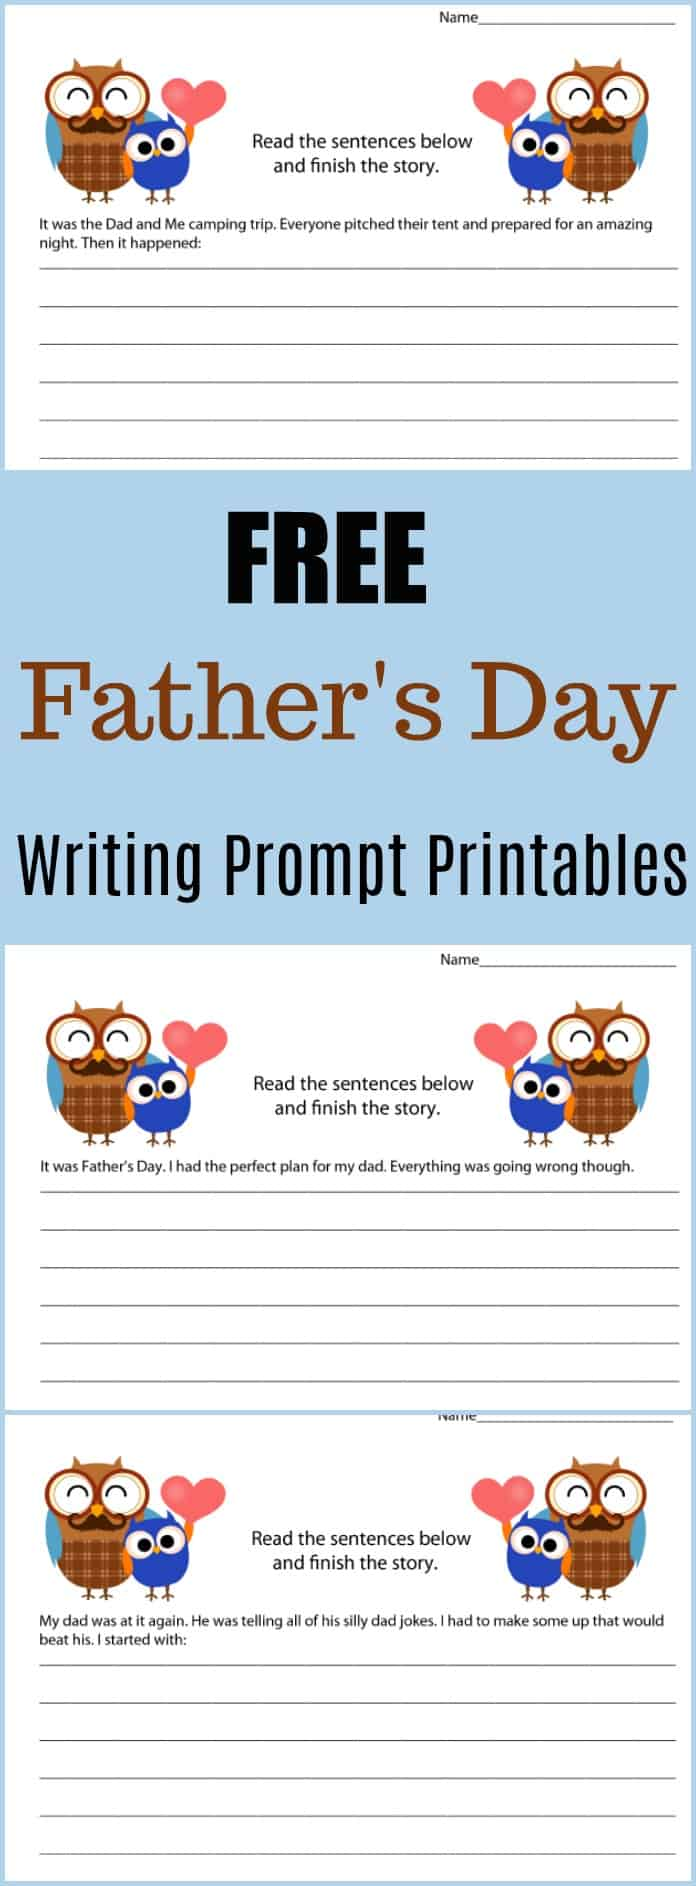 Free Father's Day Writing Prompt Printables -  #writing #writingprompt #holiday #printable #freeprintable #education #edchat #homeschool #homeschooling #fathersday